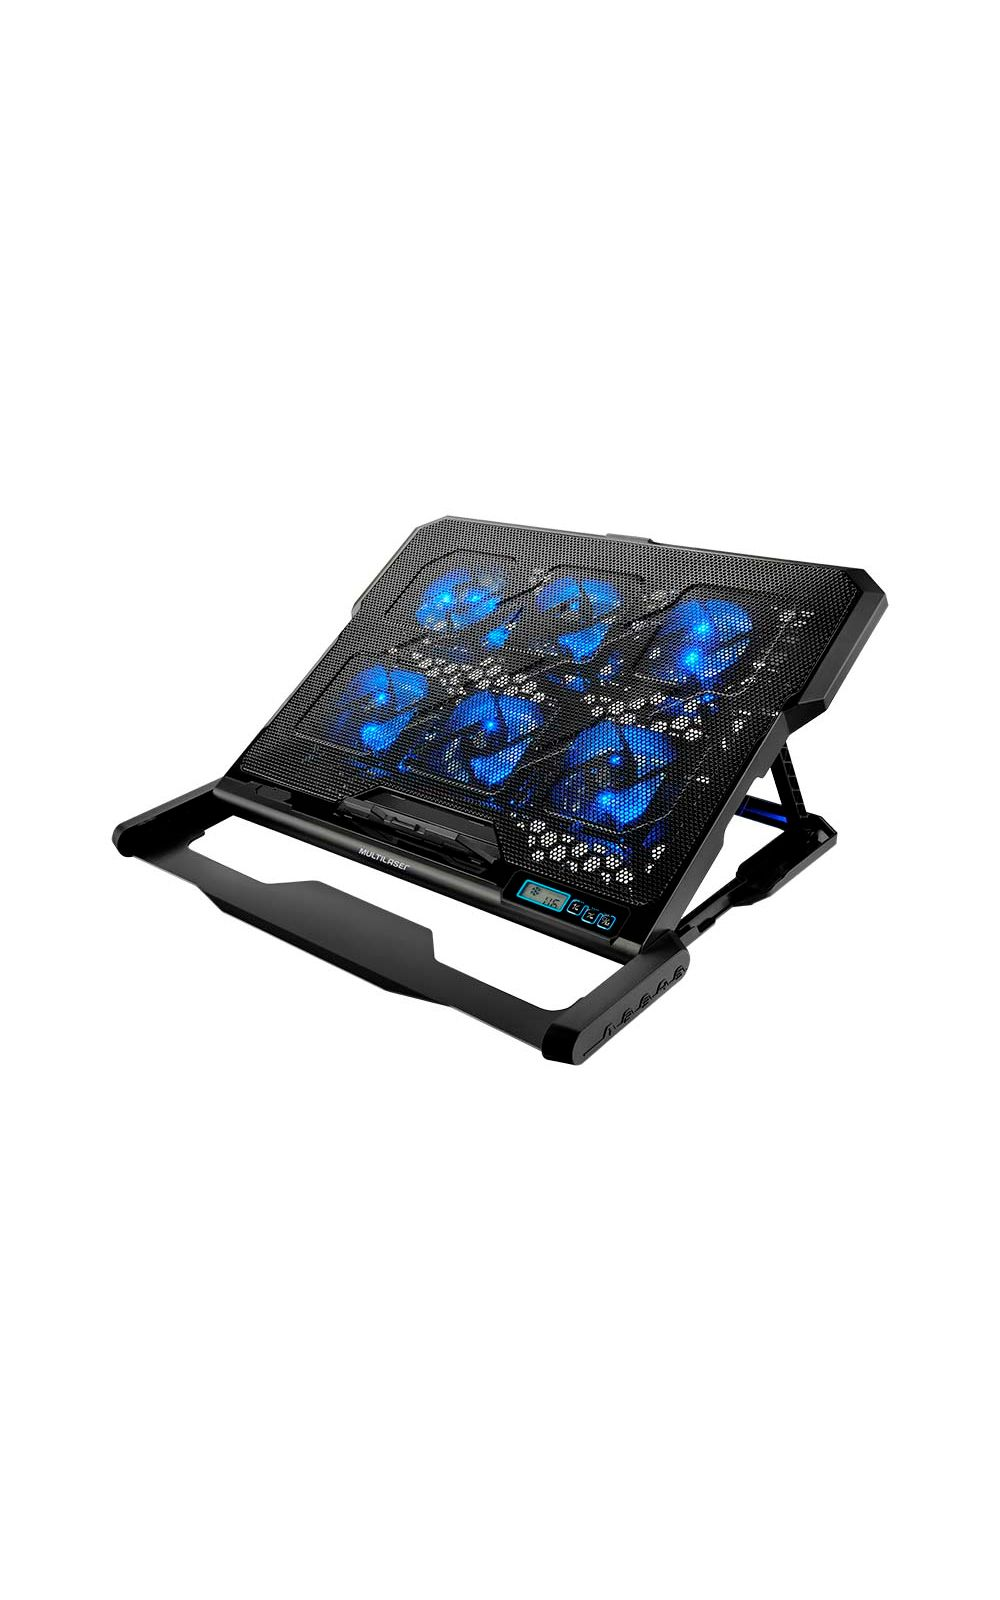 Foto 2 - Cooler Para Notebook Com 6 Fans Led Azul Hexa Cooler - AC282